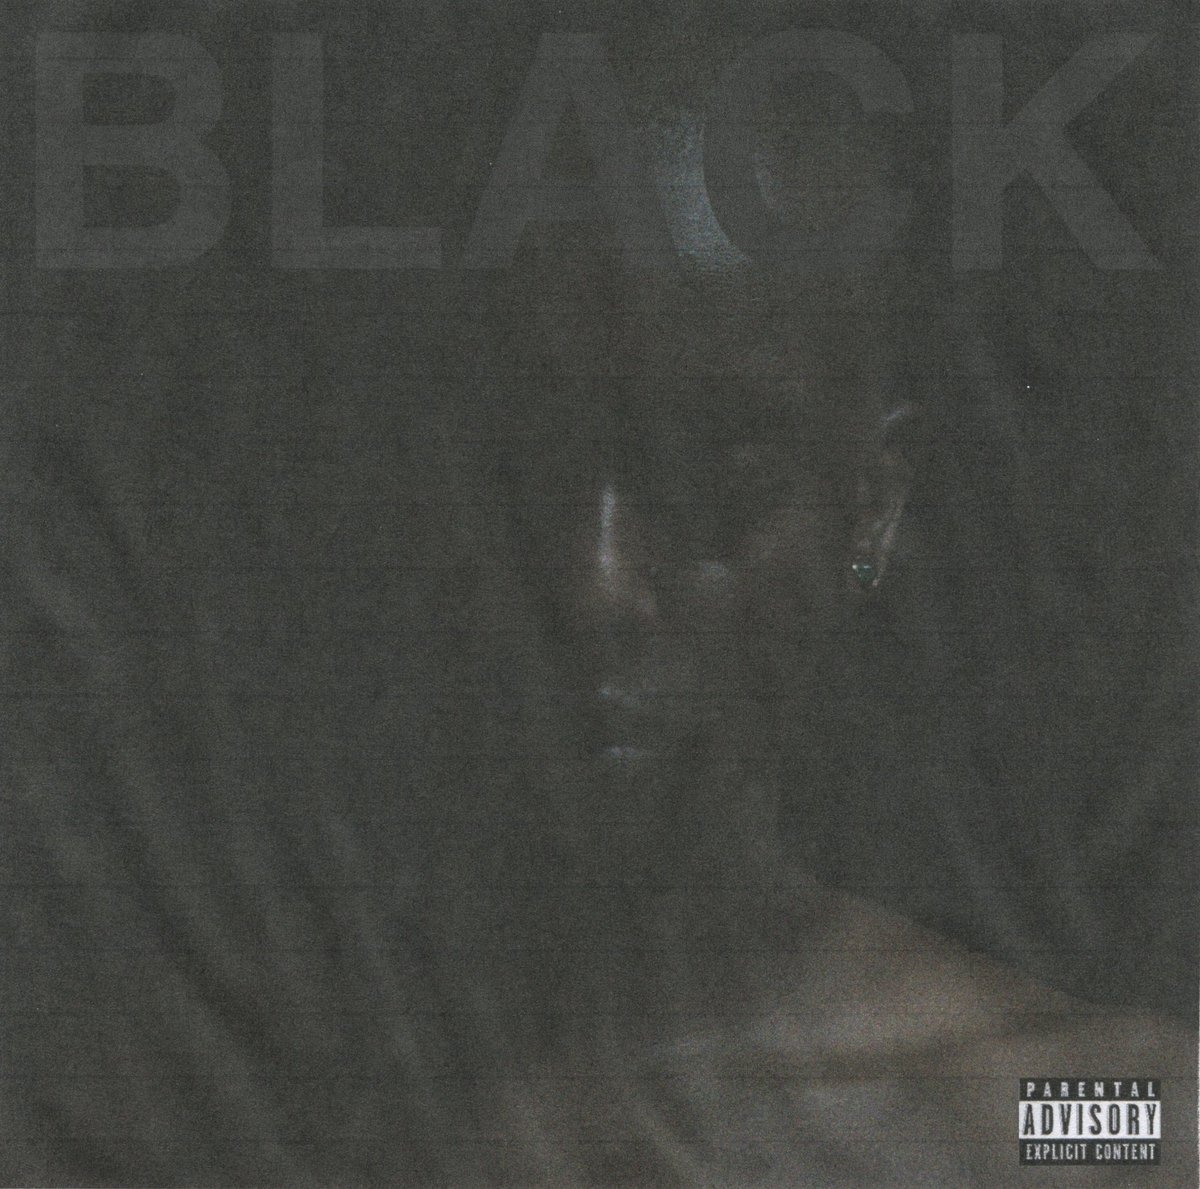 Buddy's 'Black' featuring A$AP Ferg cover art